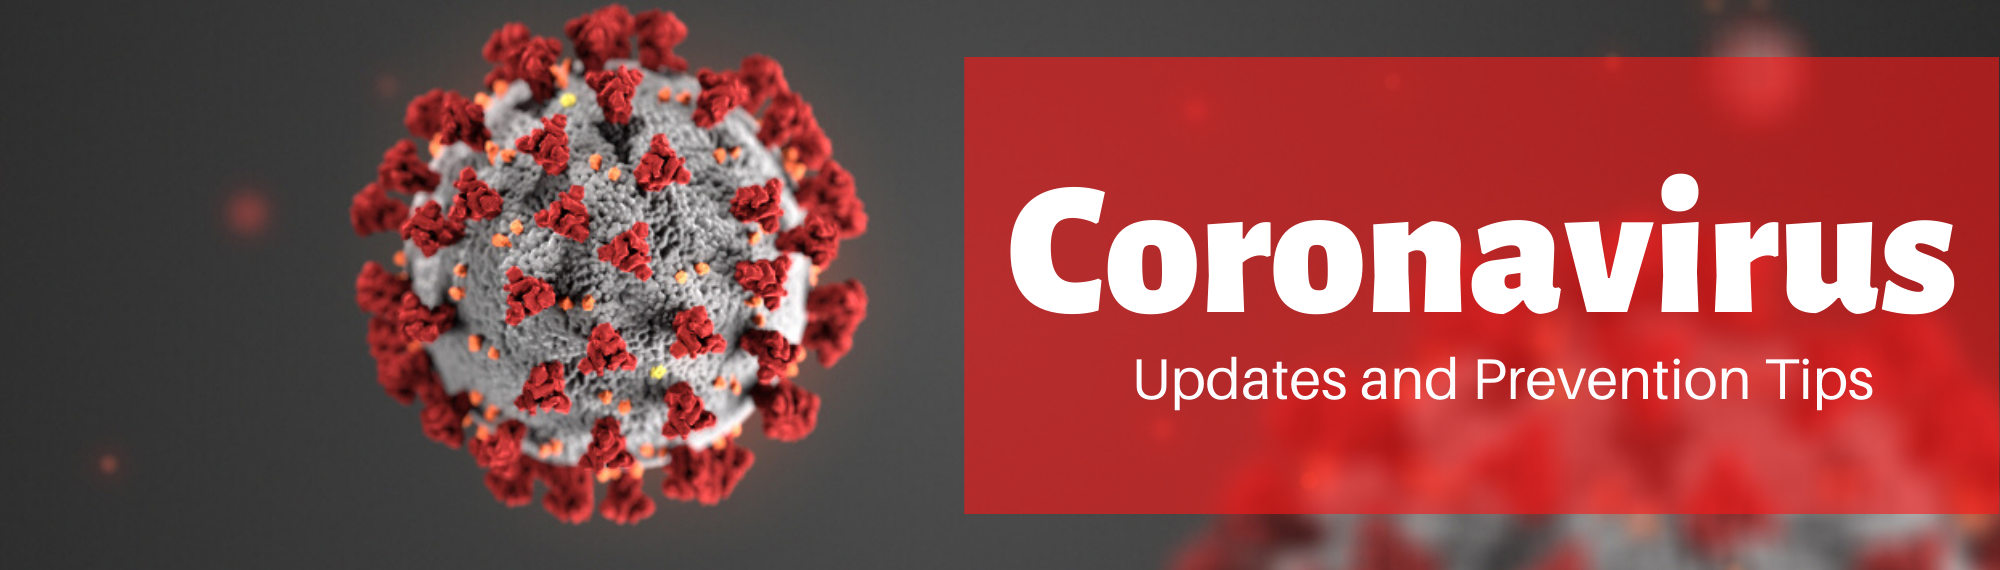 Coronavirus Updates and Prevention Tips